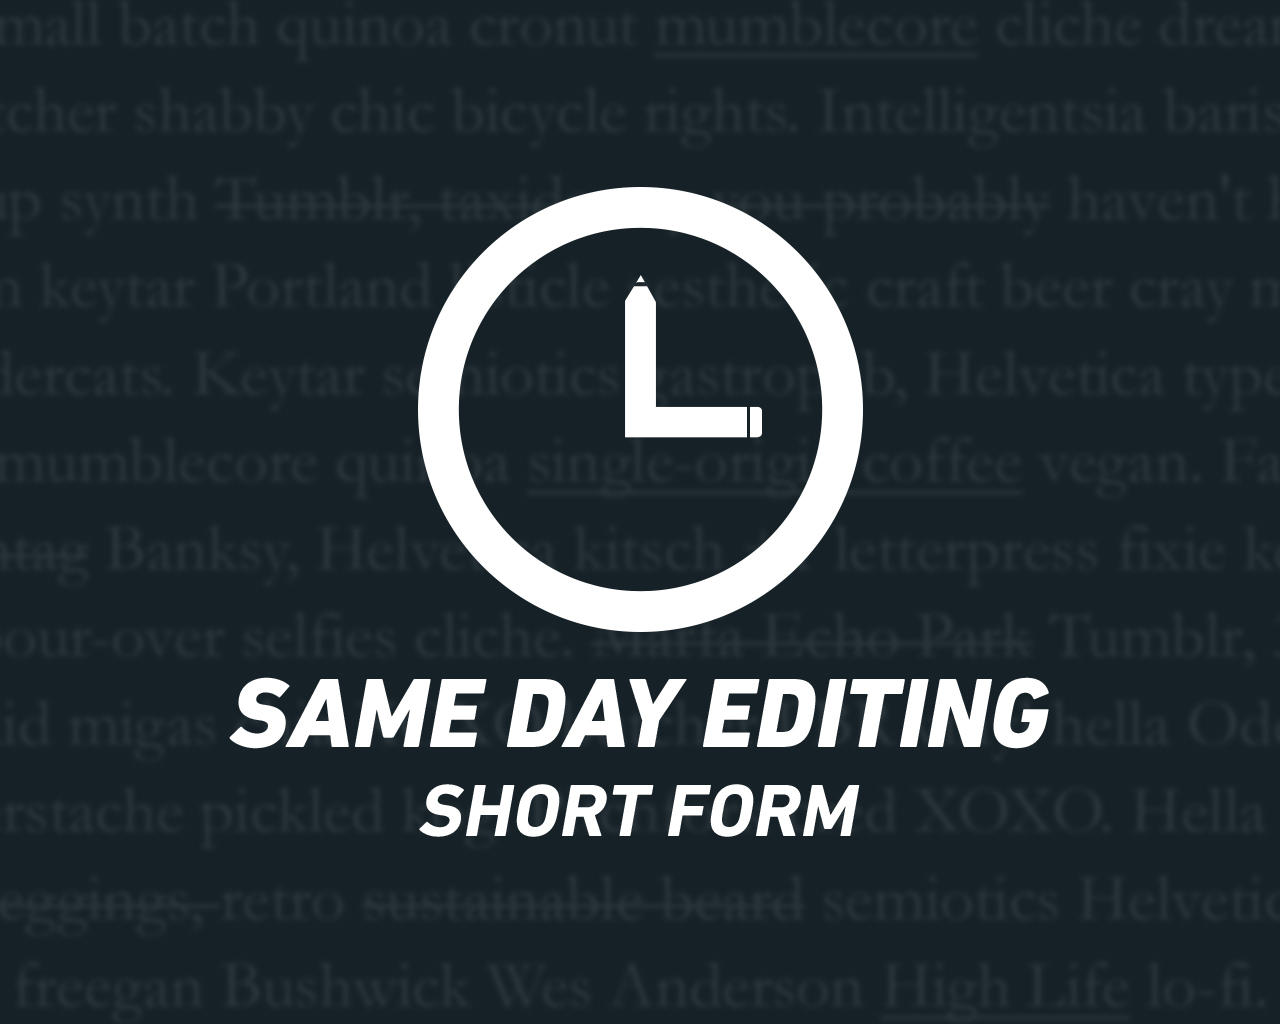 Same Day Short Form Editing by tarnopol - 73972